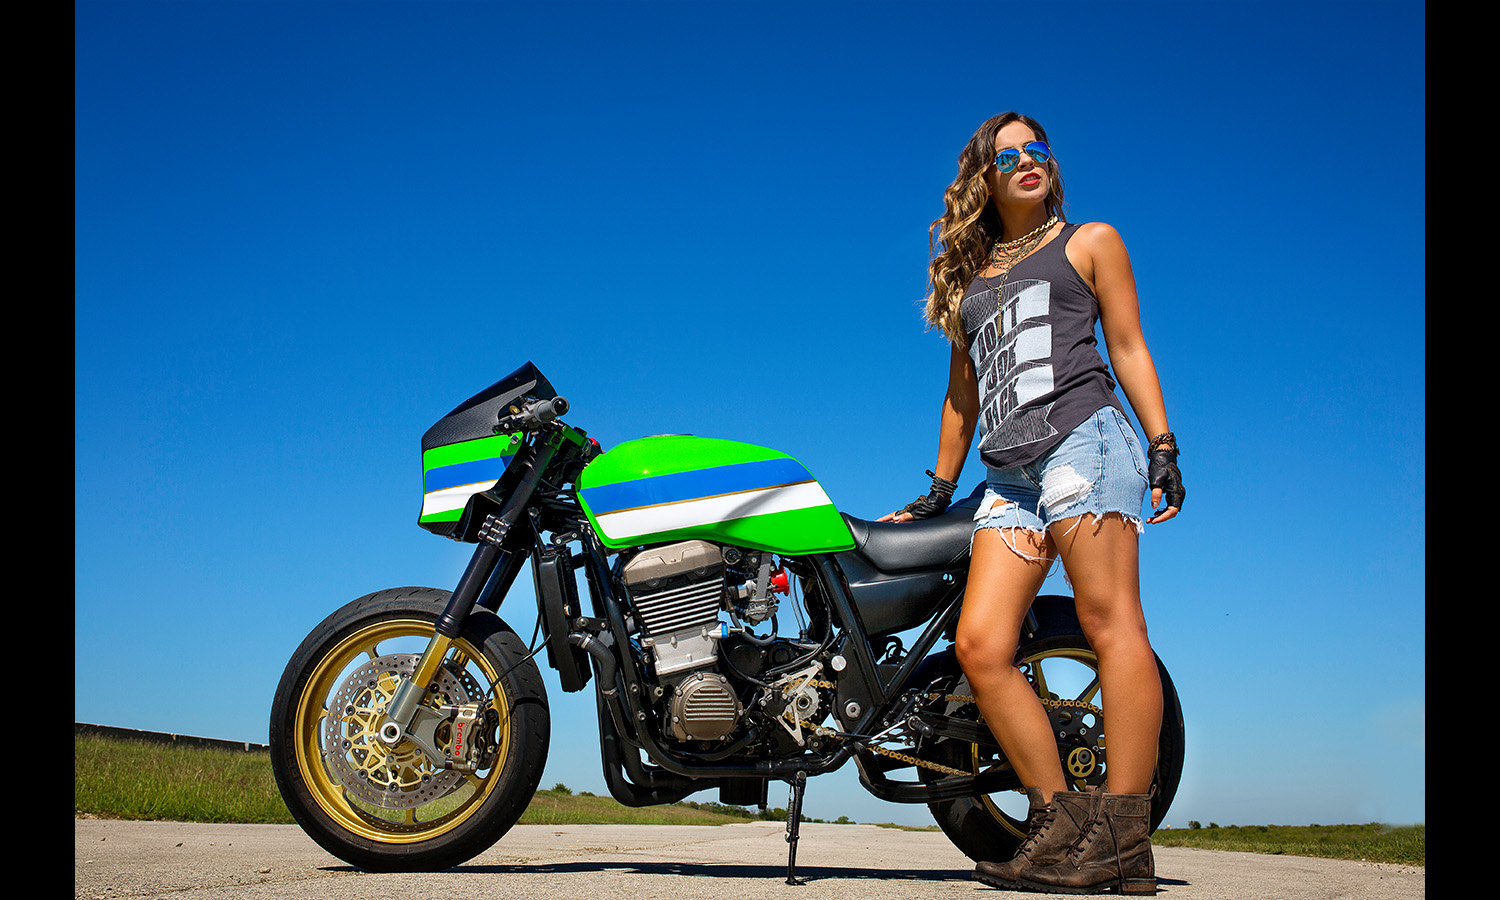 babe withMotorcycle Motorcycle Babes